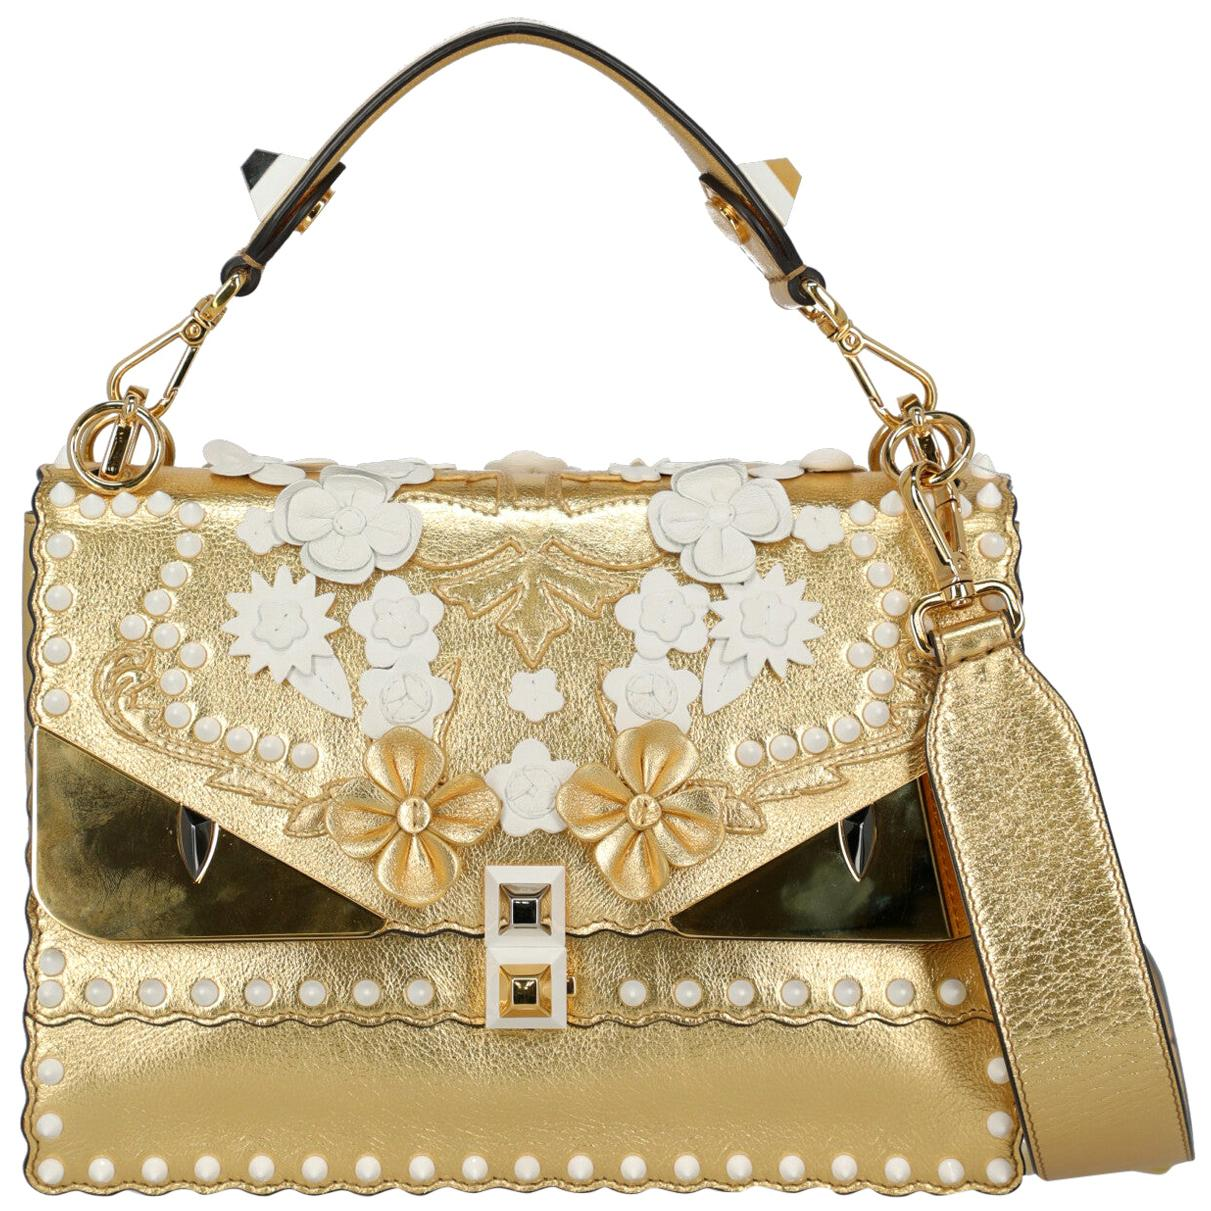 Fendi Women's Kan I Gold/White Leather